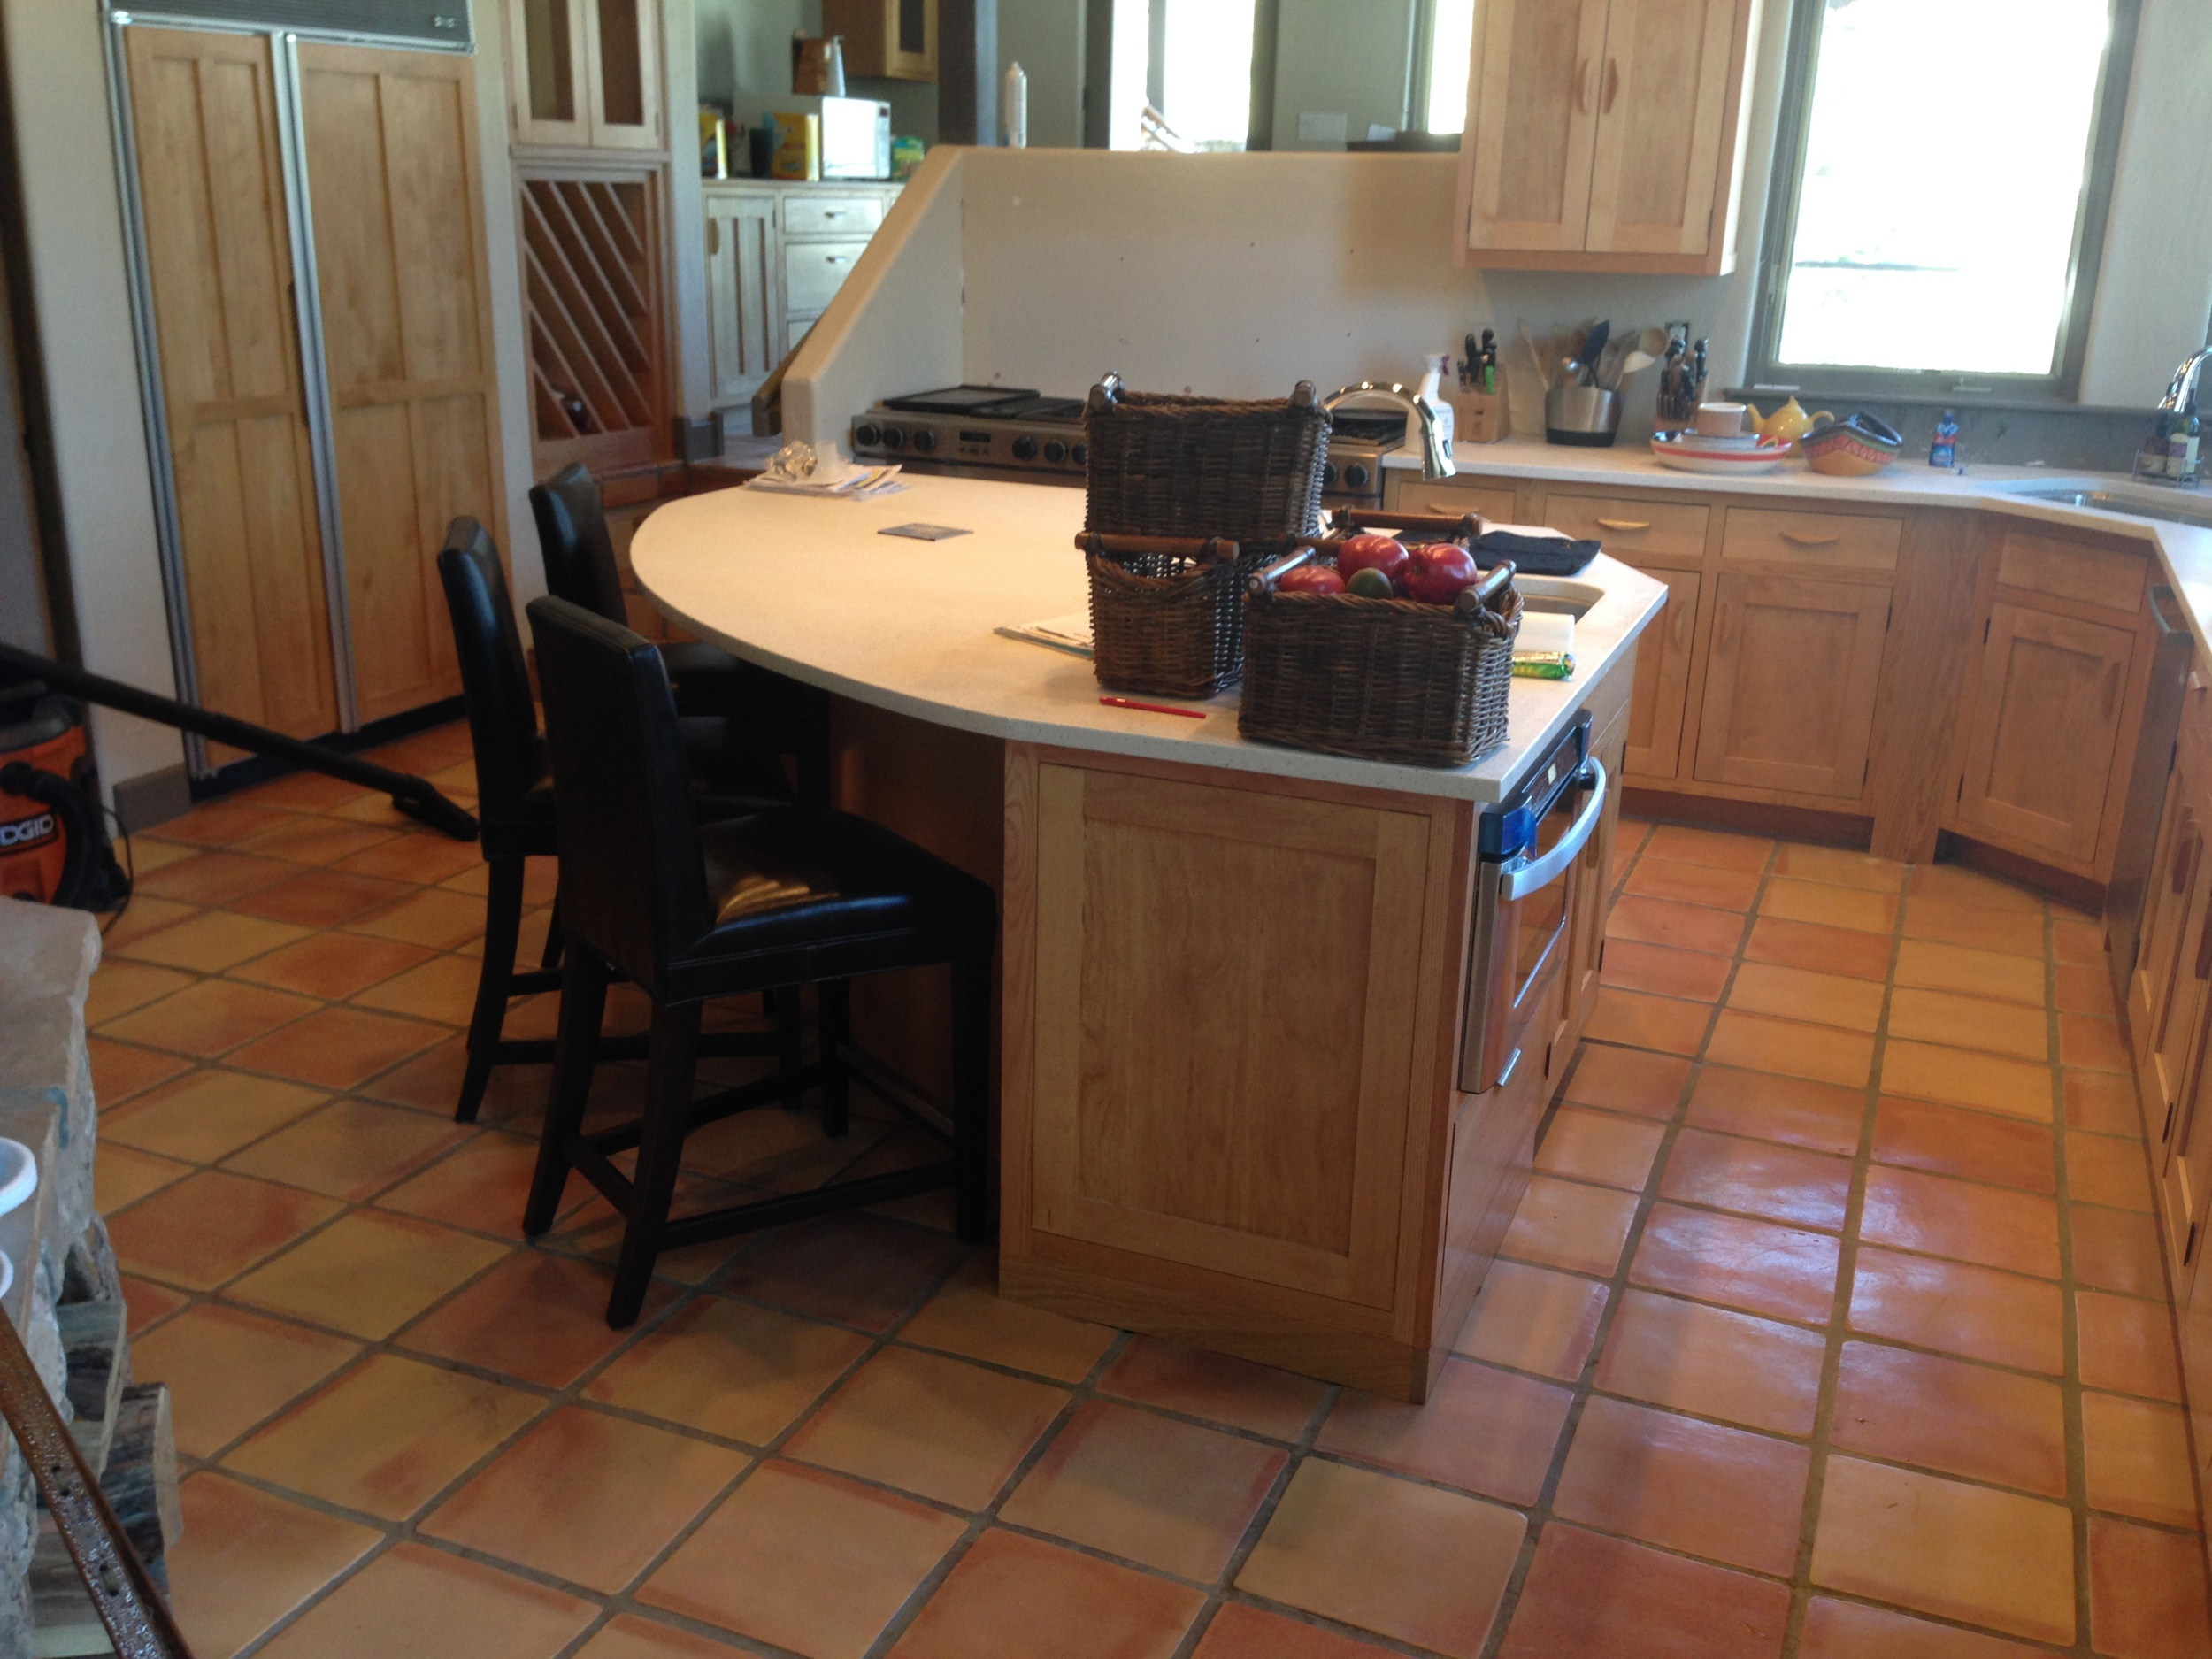 New Counter Stools